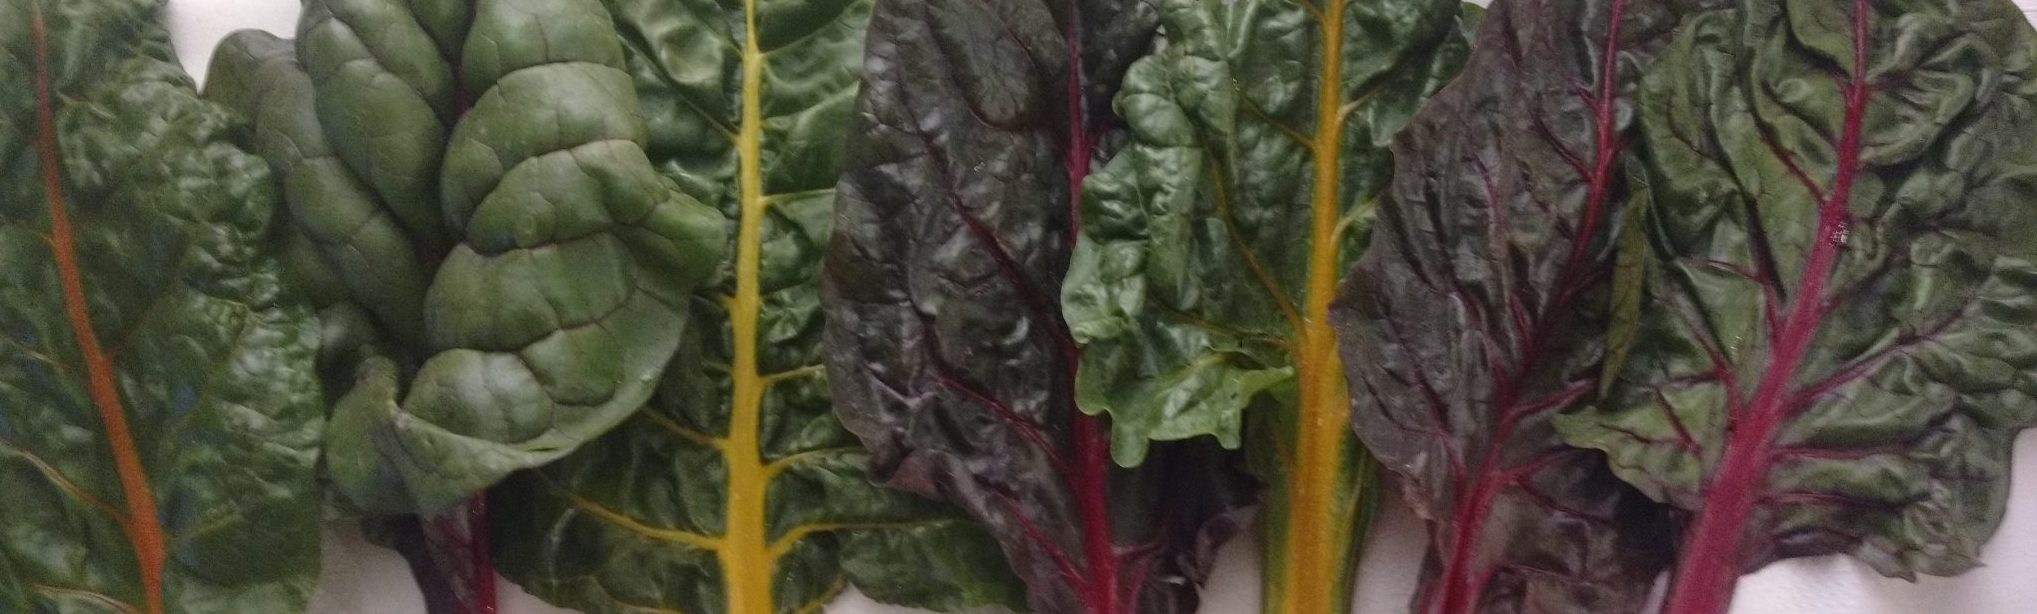 chard used for dairy-free swiss chard